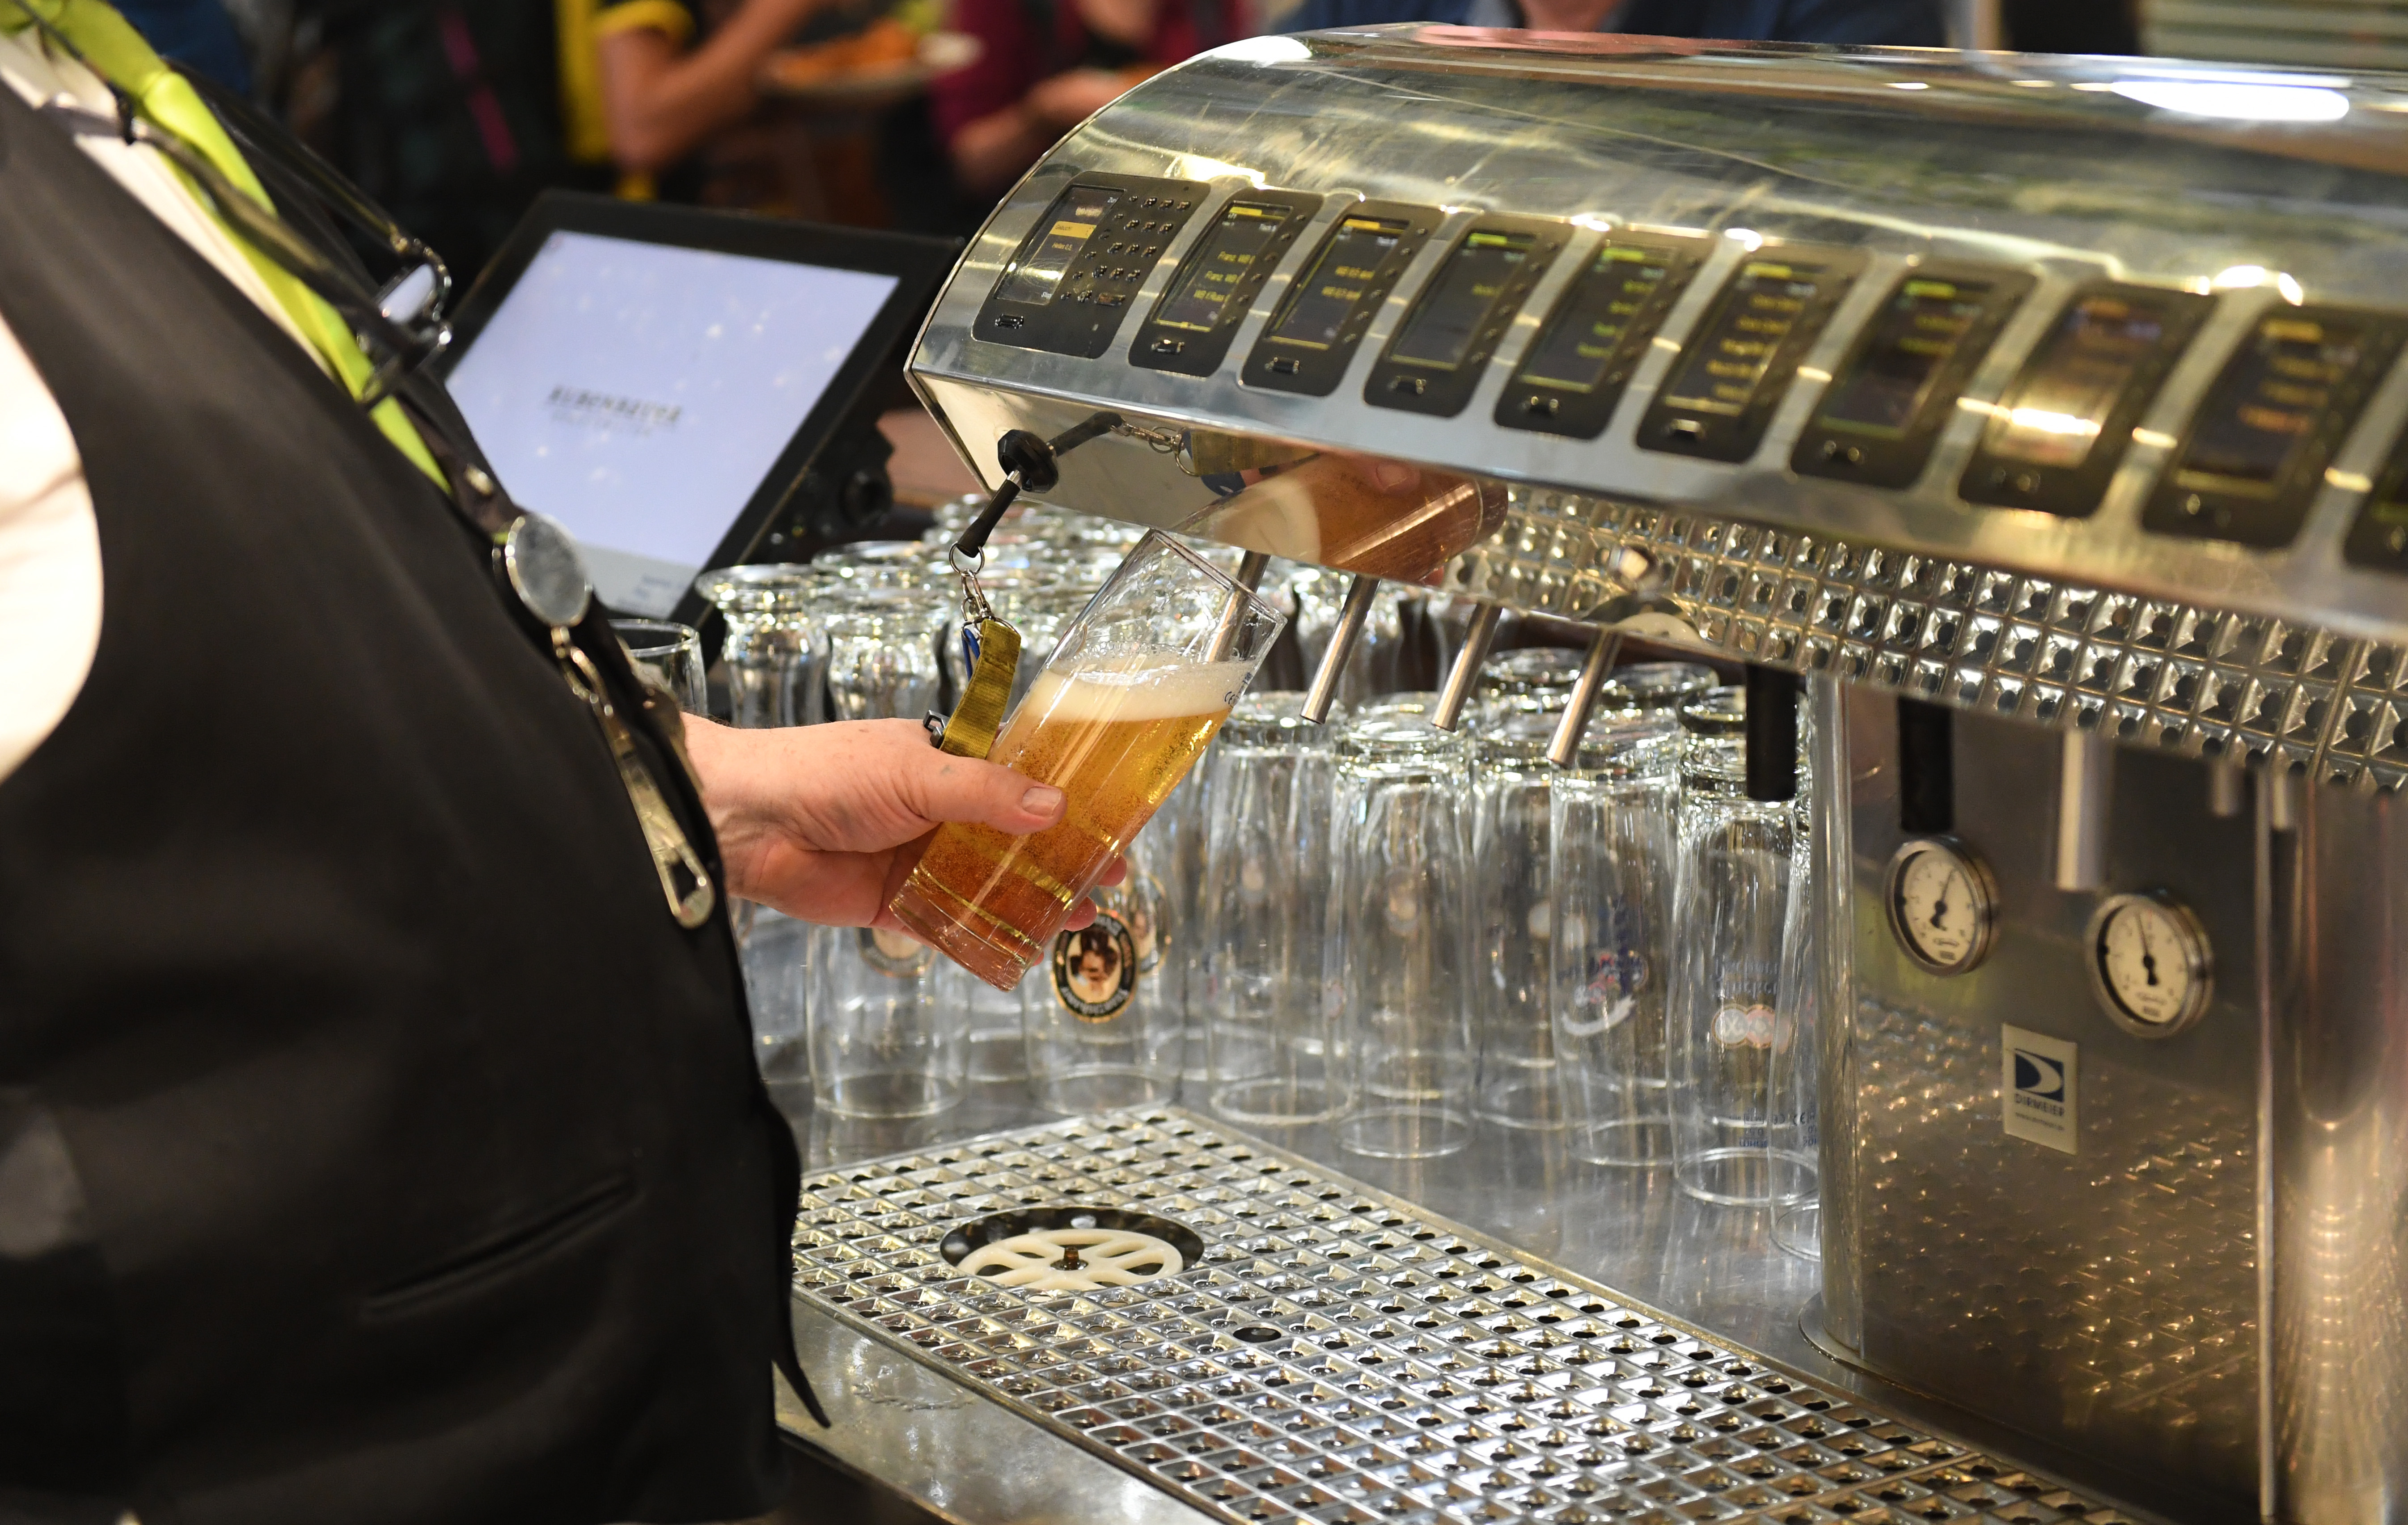 Alcohol ban now in force all day at Munich Central Station